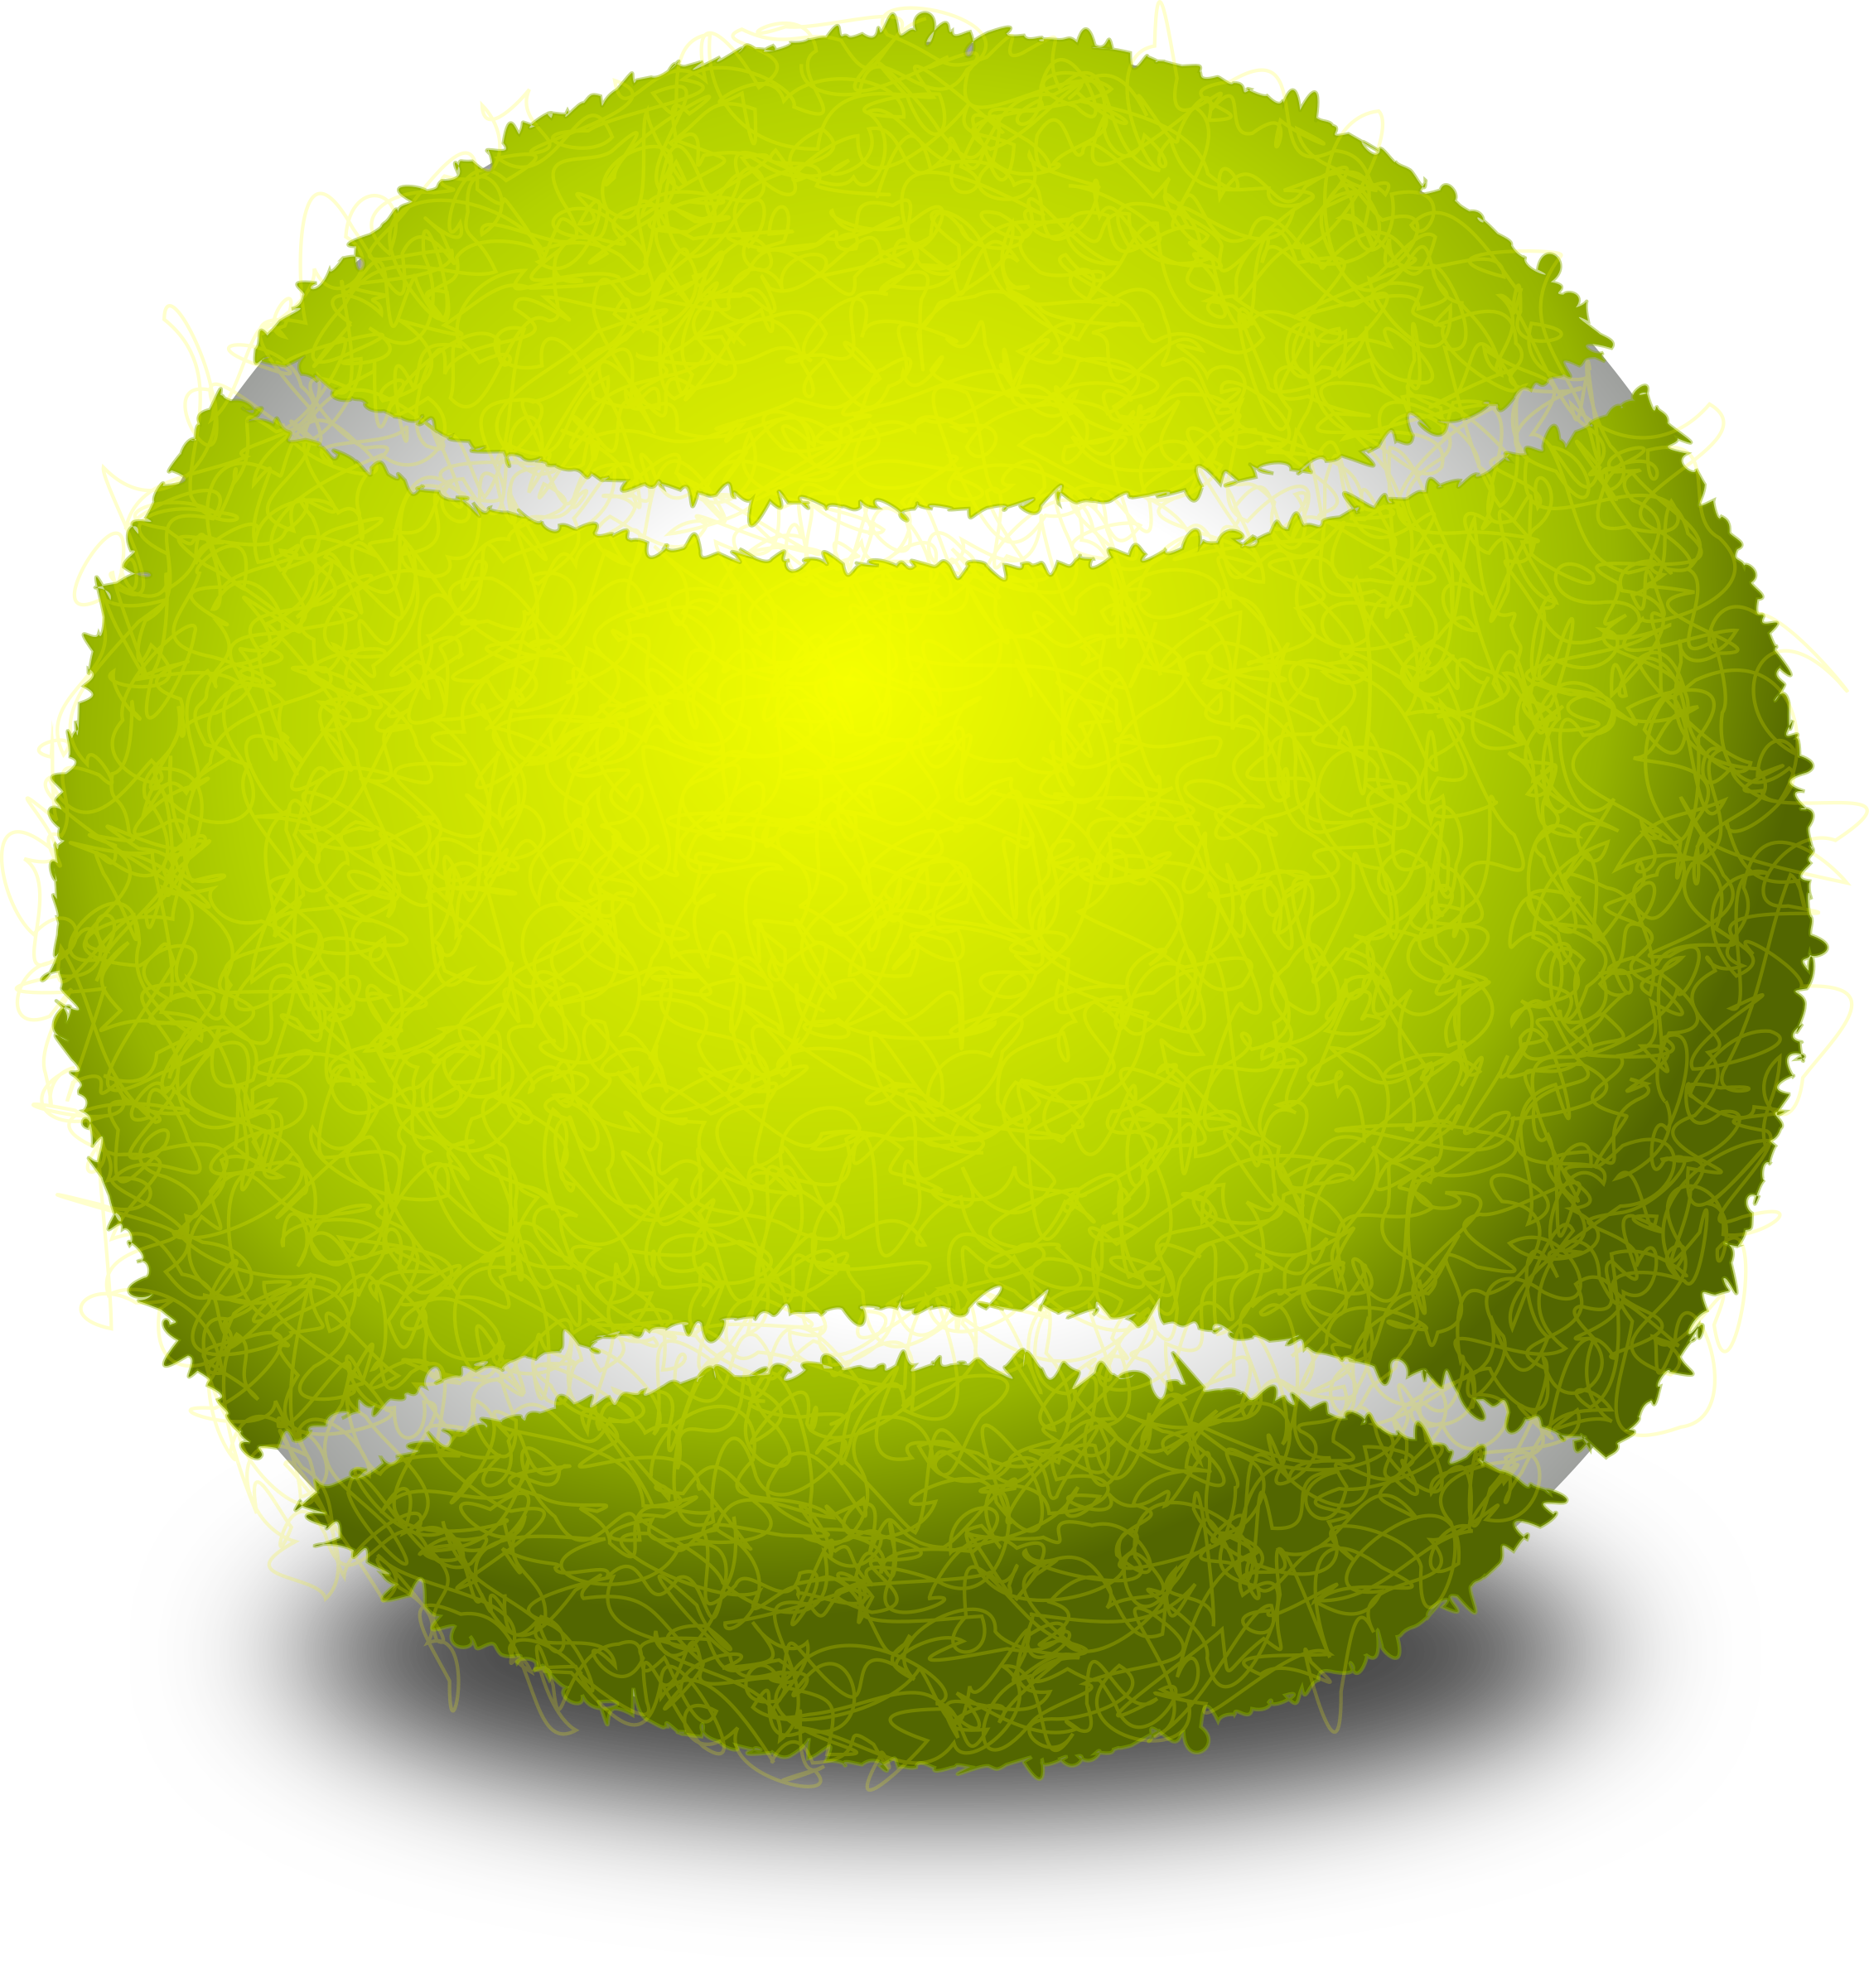 tennis ball by Chrisdesign